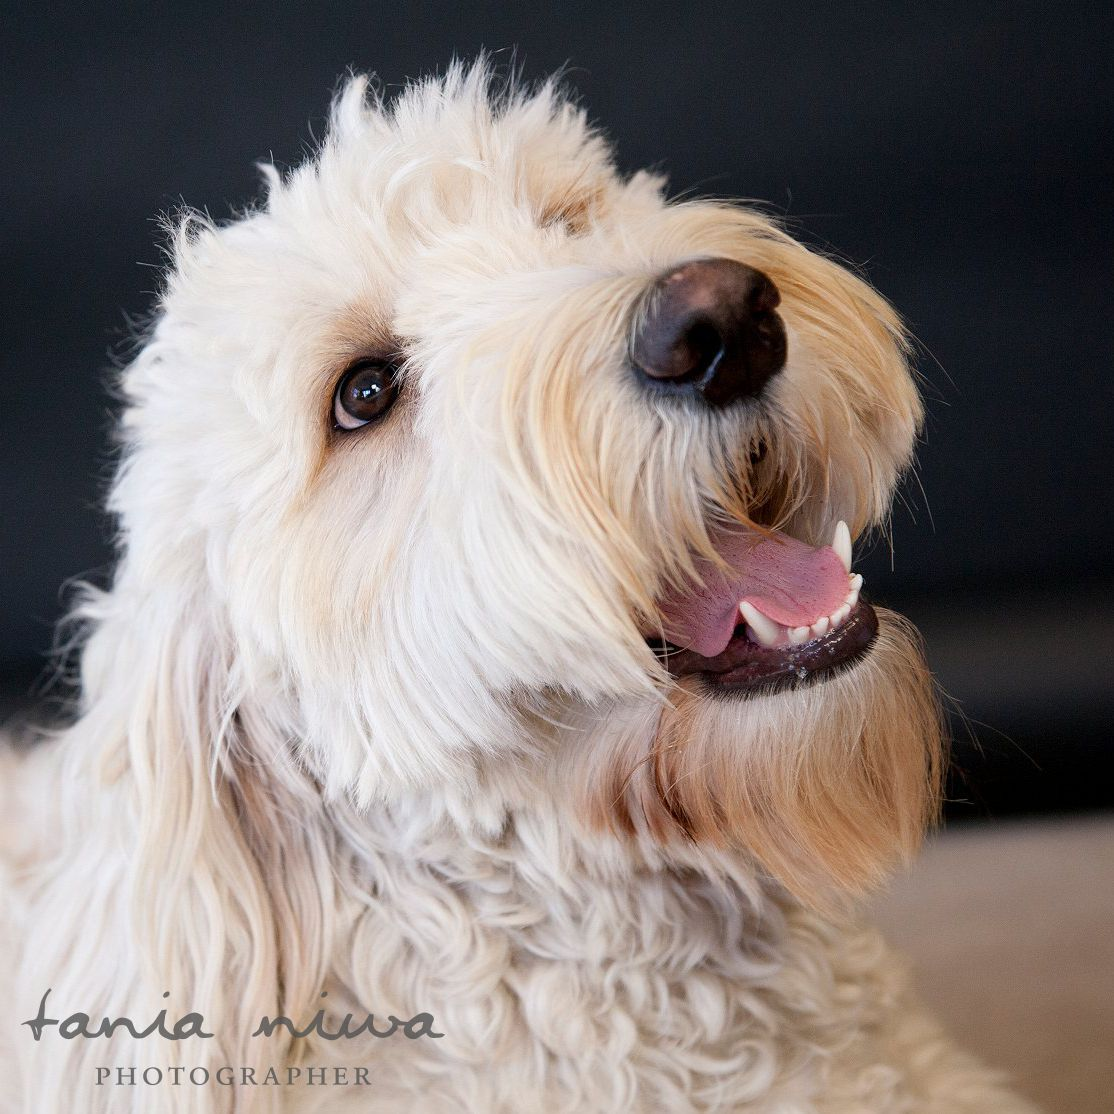 This is my Golden Doodle [Groodle in Australia] Duchess